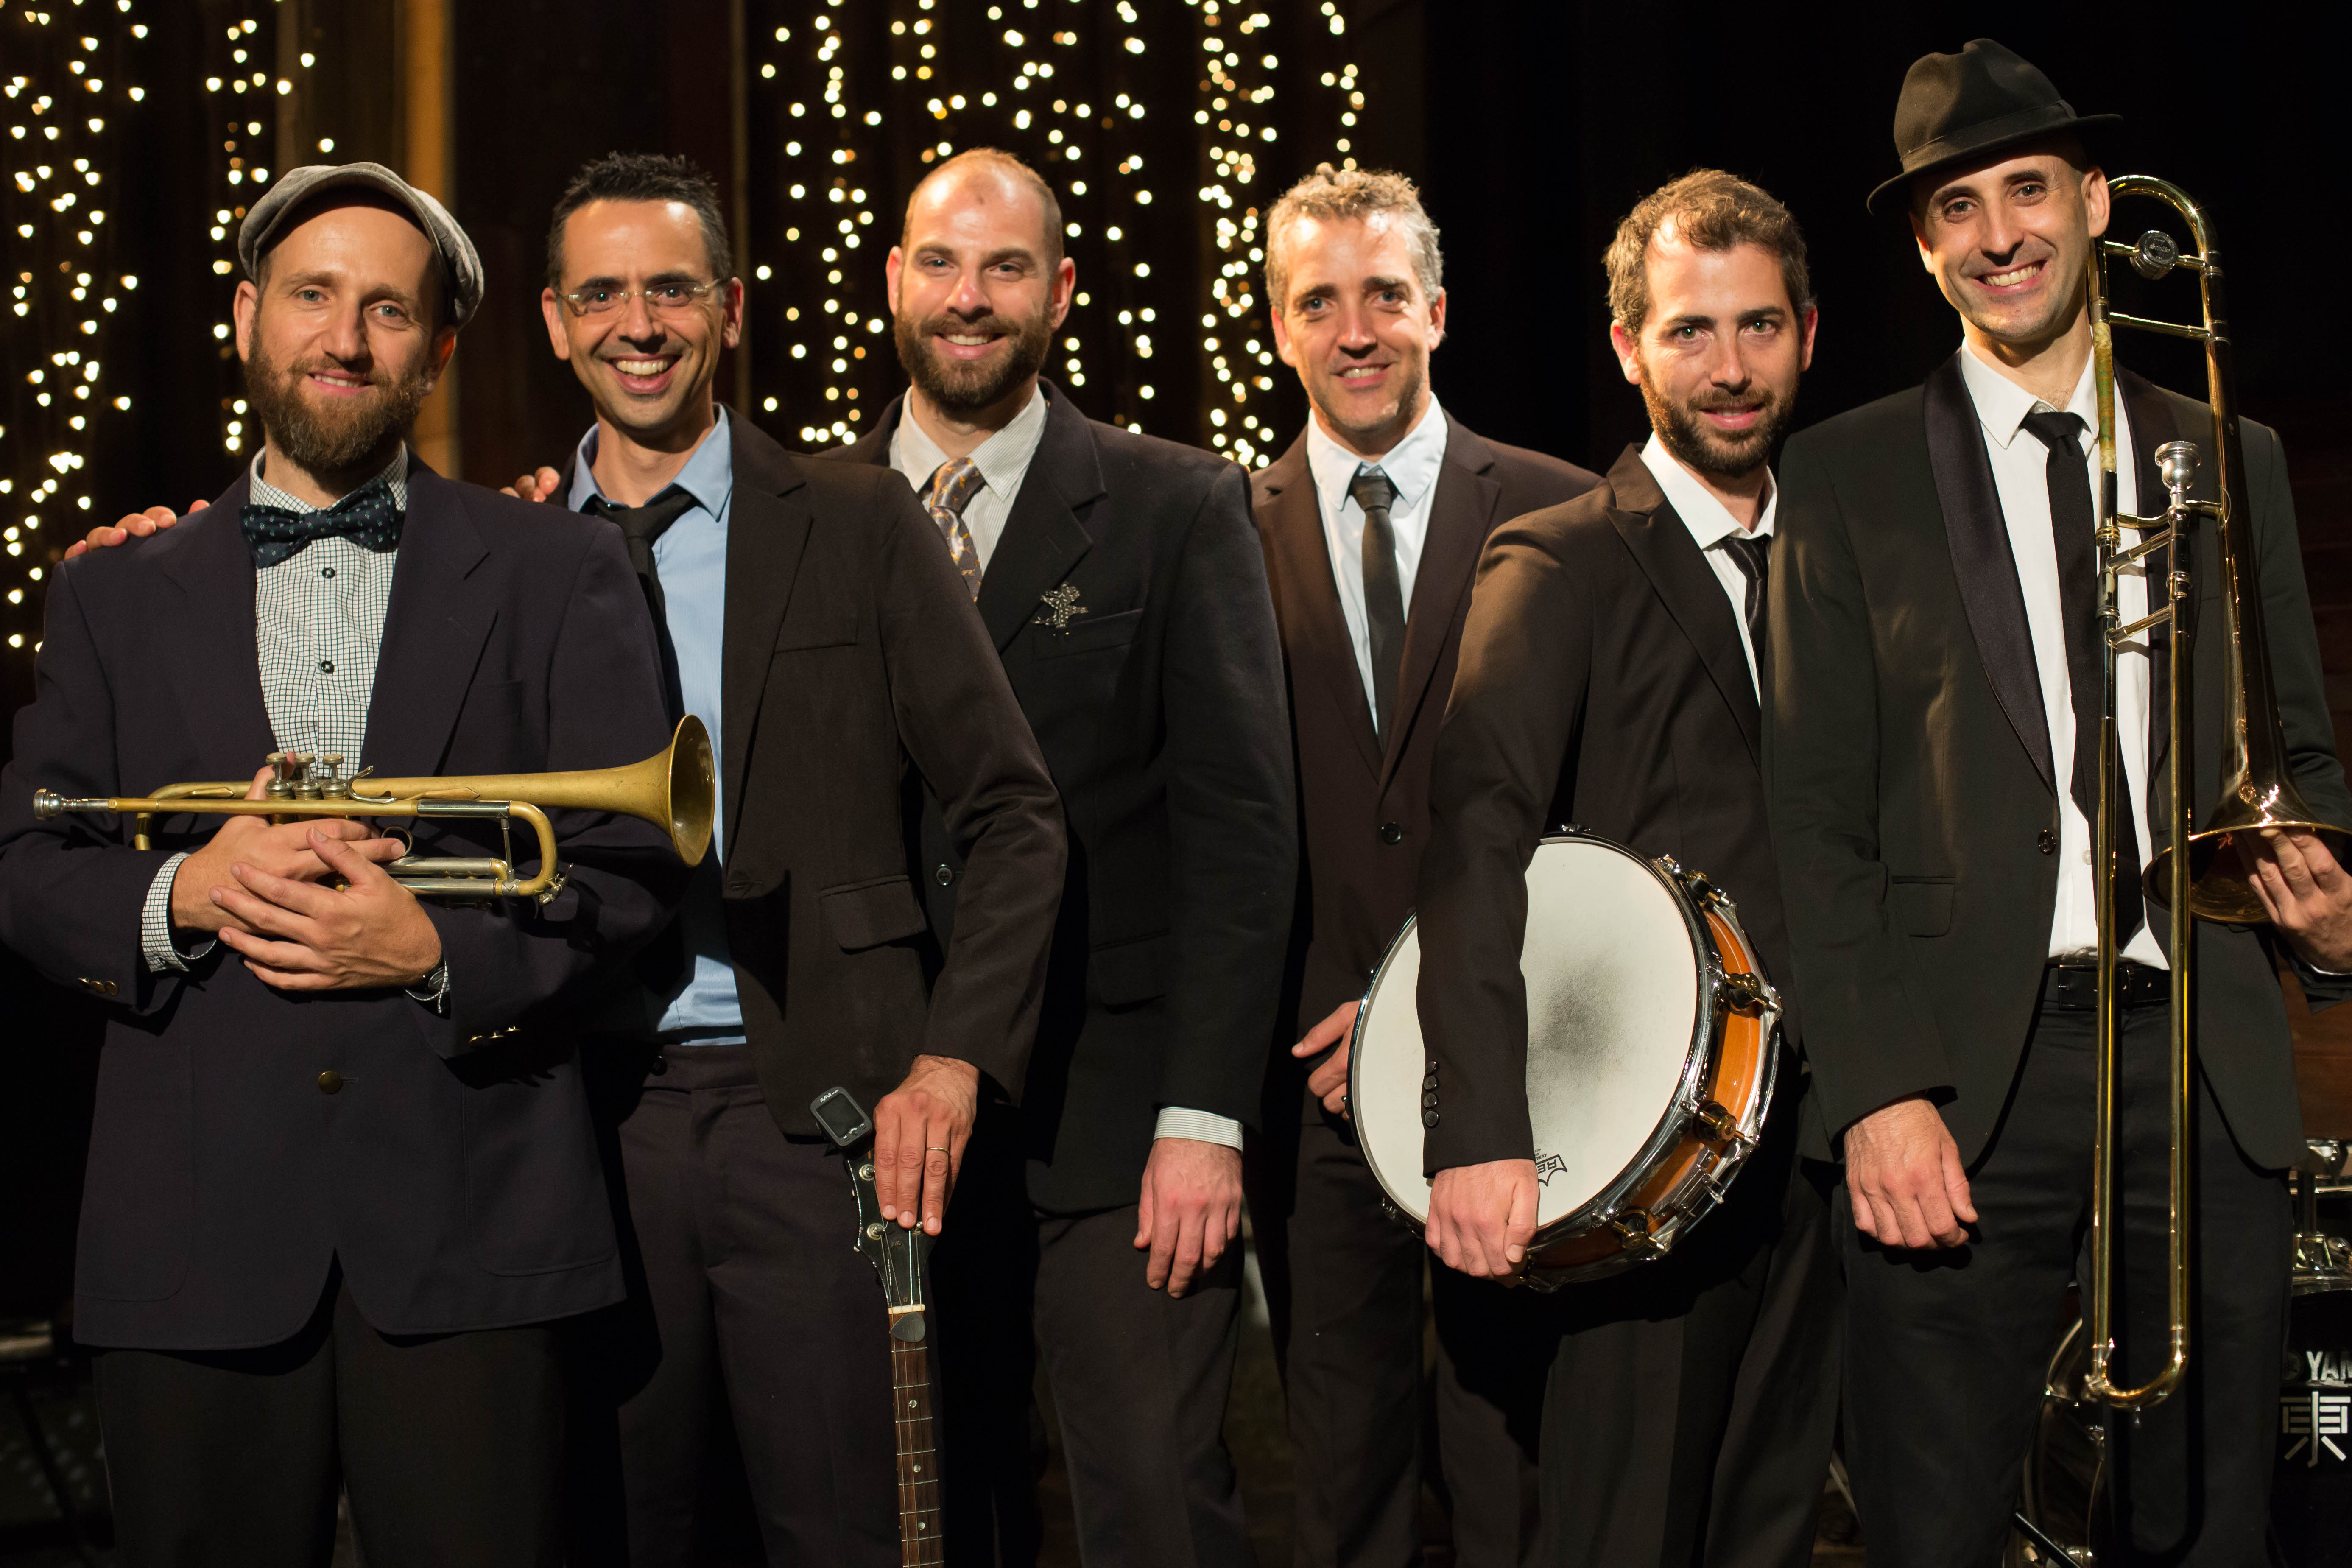 The New Orleans Function Jazz Band